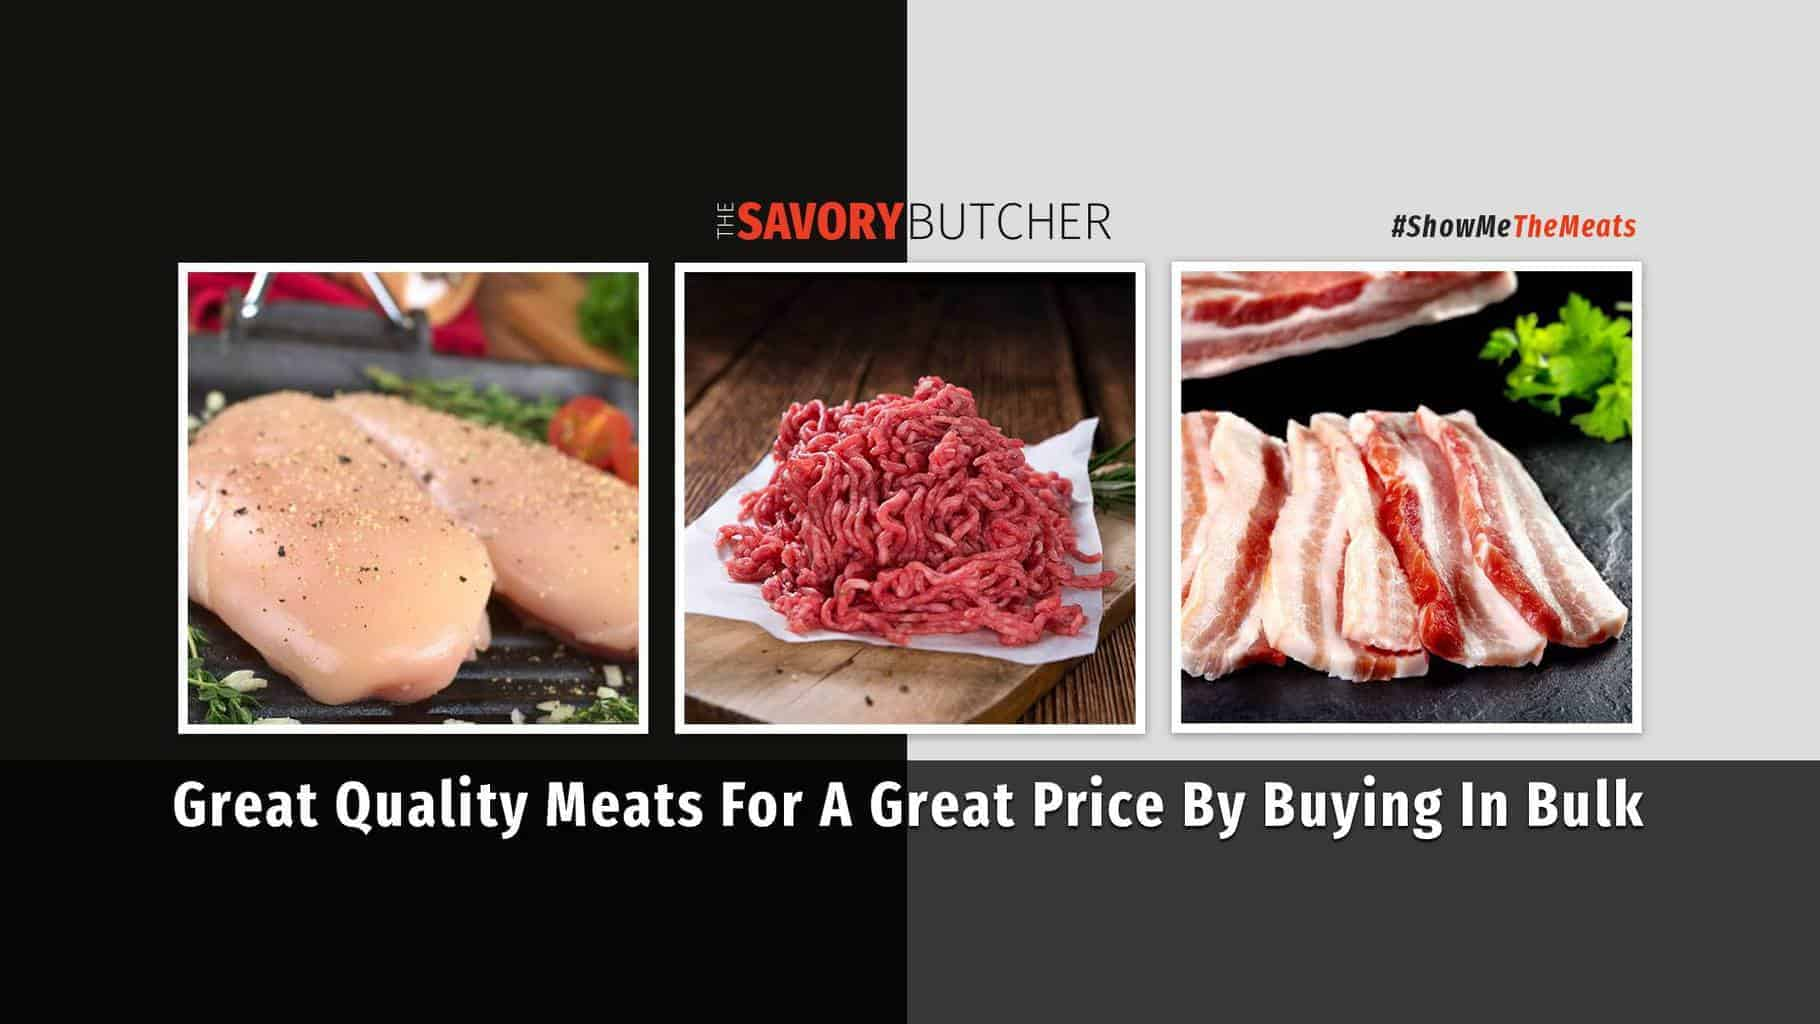 NEW Bulk Meat Online Ordering - The Savory Butcher : Alternative To Zaycon